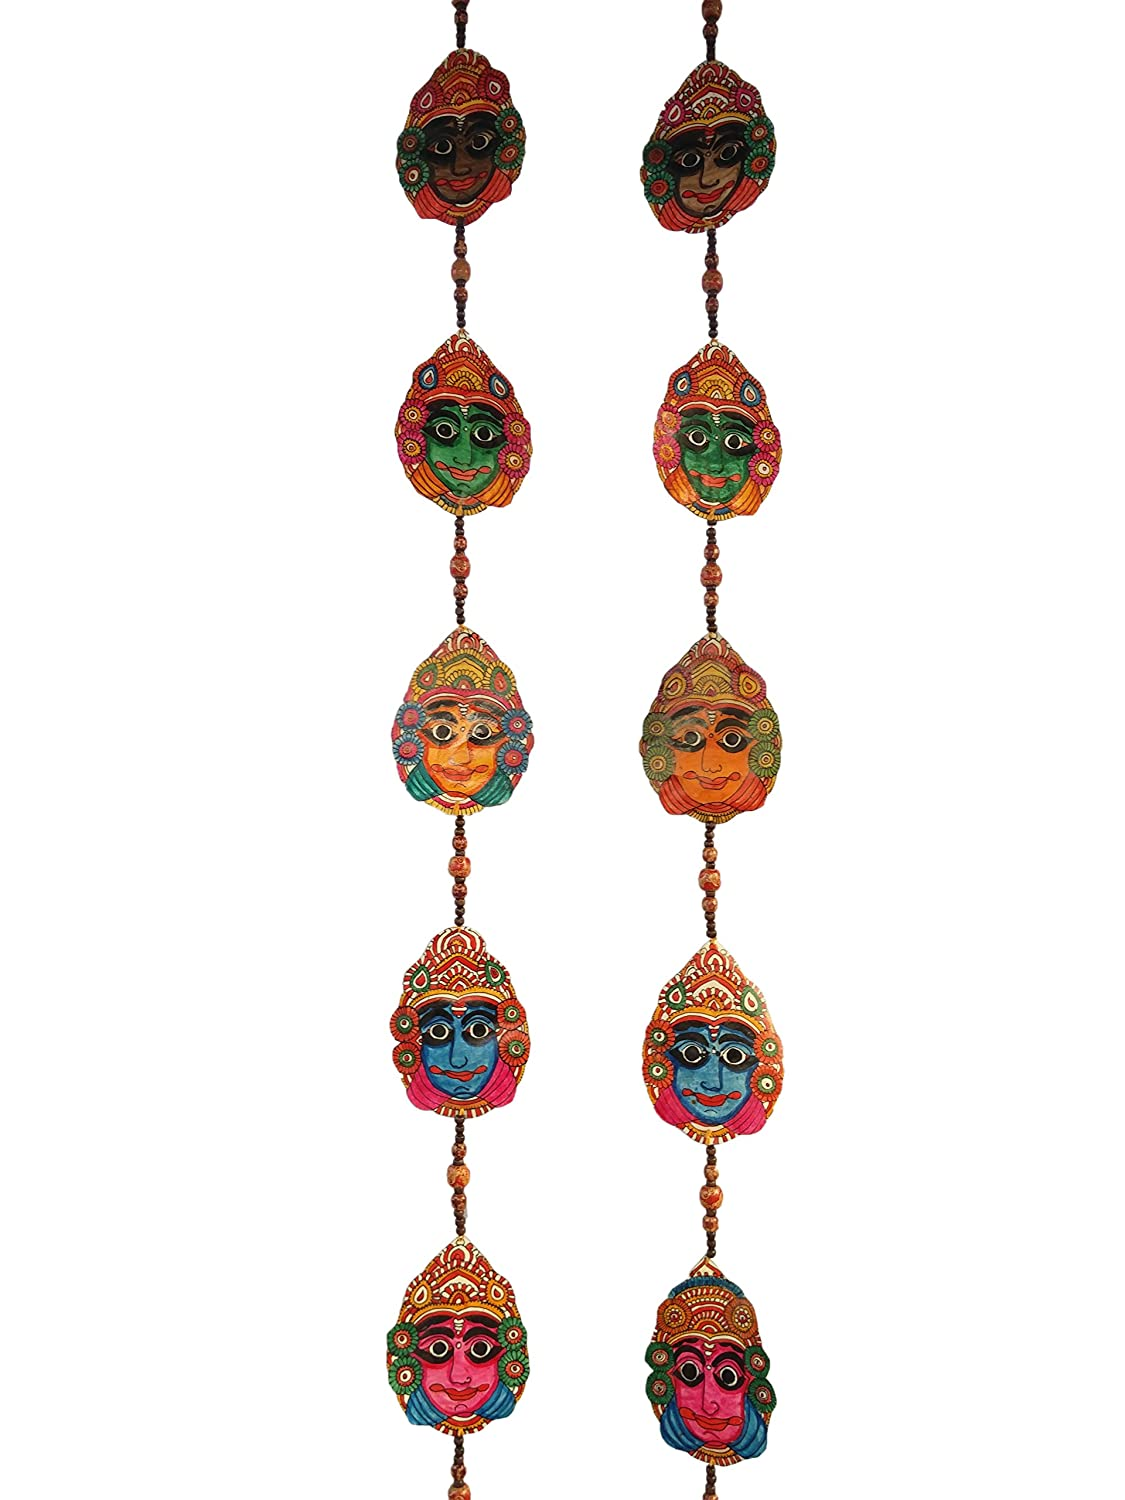 Buy leather puppetry yakshagana face door hanging pair leather puppetry door hangings yakshagana face online at low prices in india amazon in